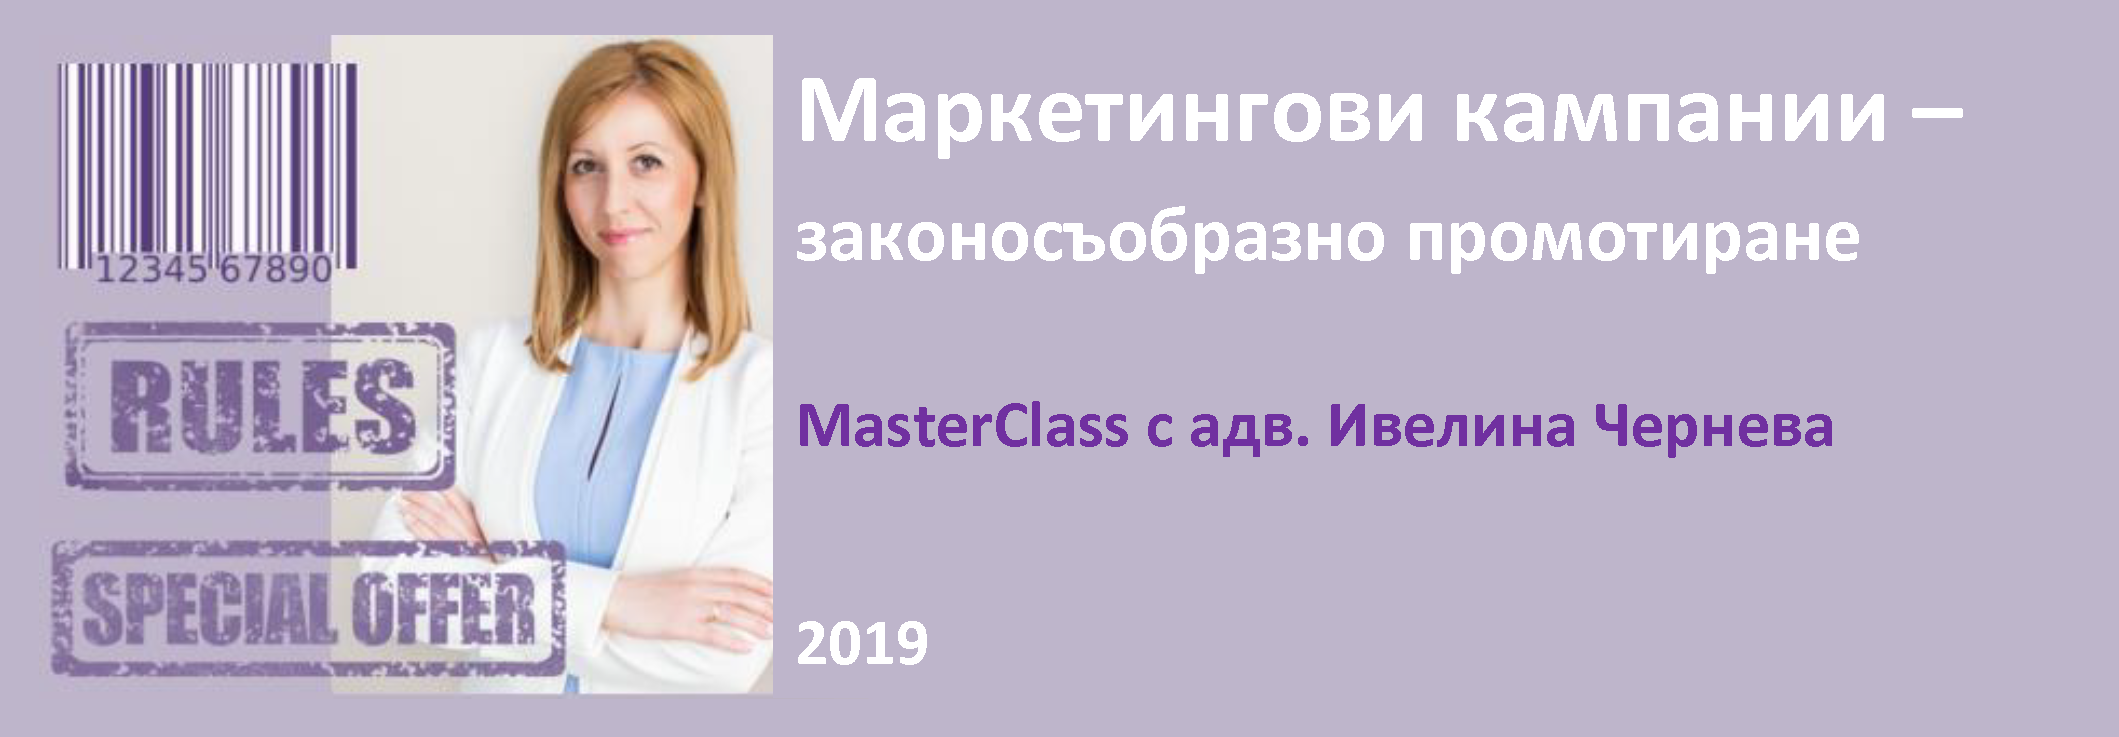 Marketing Campaigns Legal Regulations MasterClass_2019